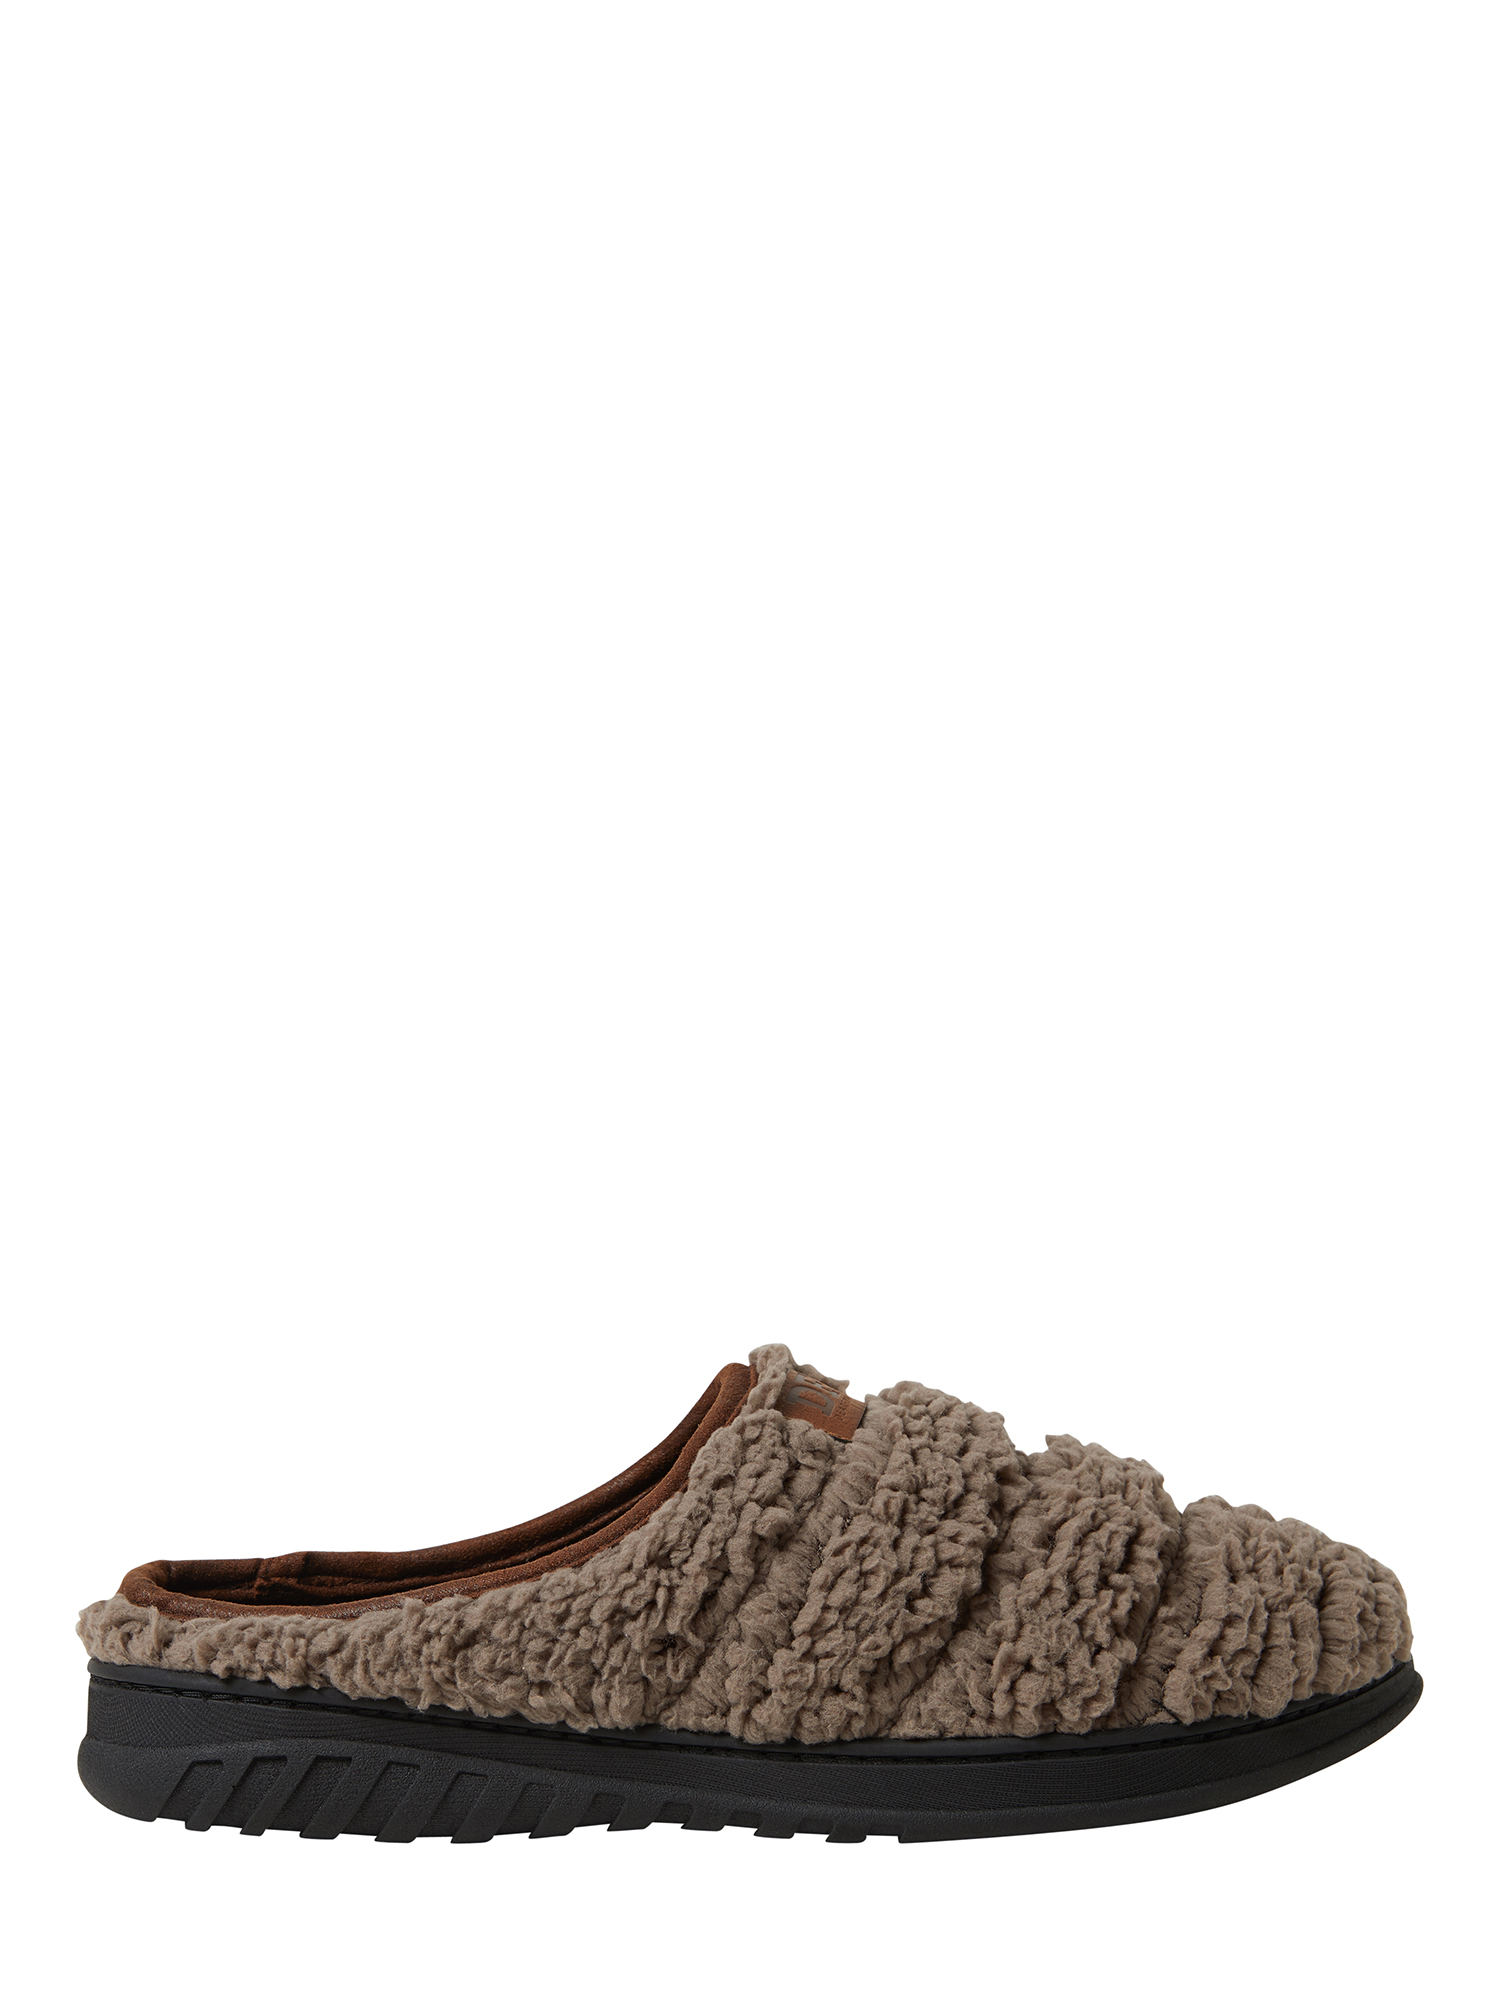 Dearfoams - DF by Dearfoams Men's Faux Sherpa Clog Slippers - Walmart.com